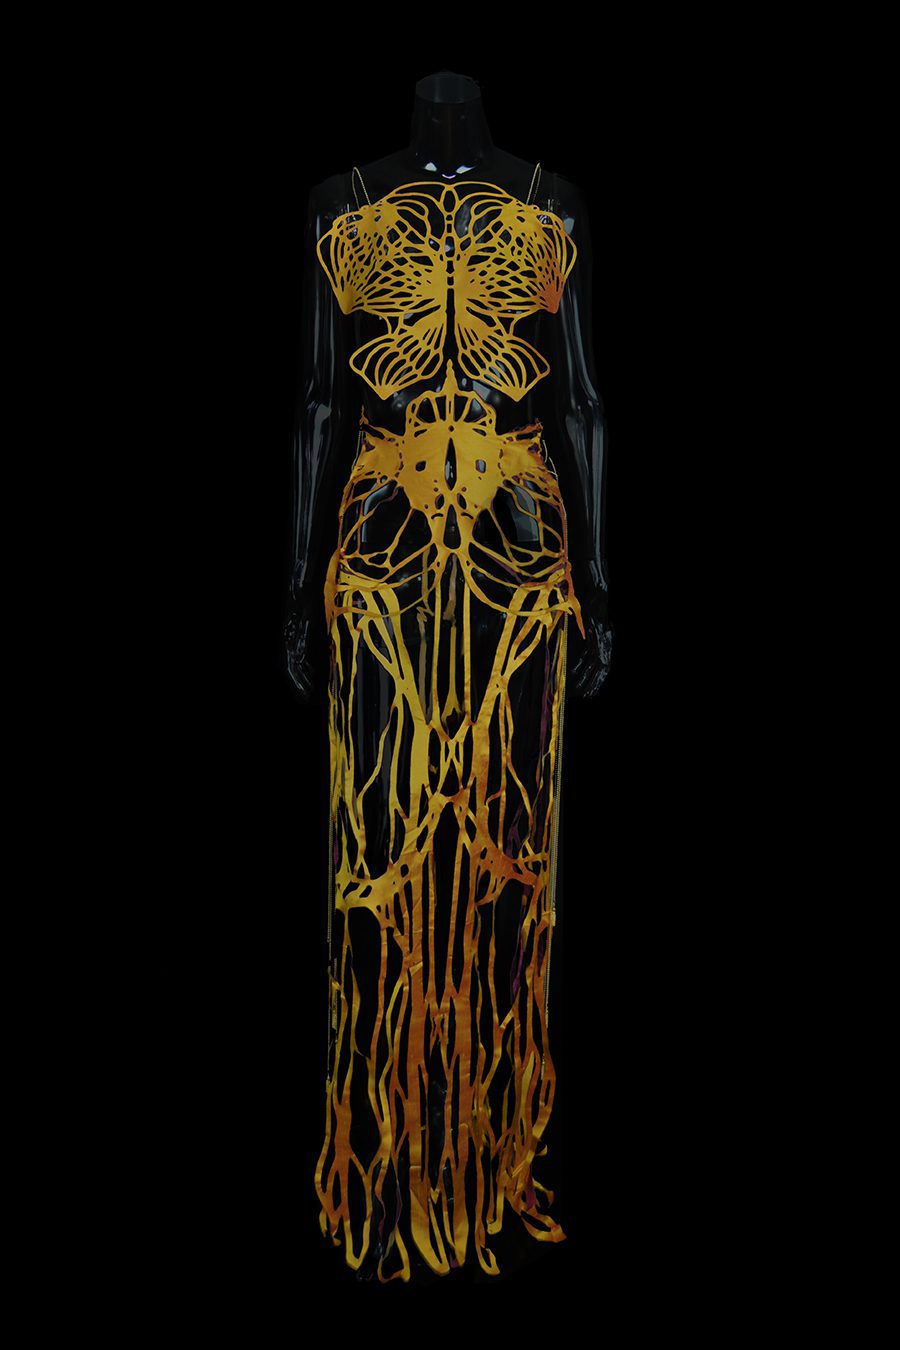 2017-Amy-Karle-Internal-Collection-yellow-silk-dress-based-on-ligaments-04